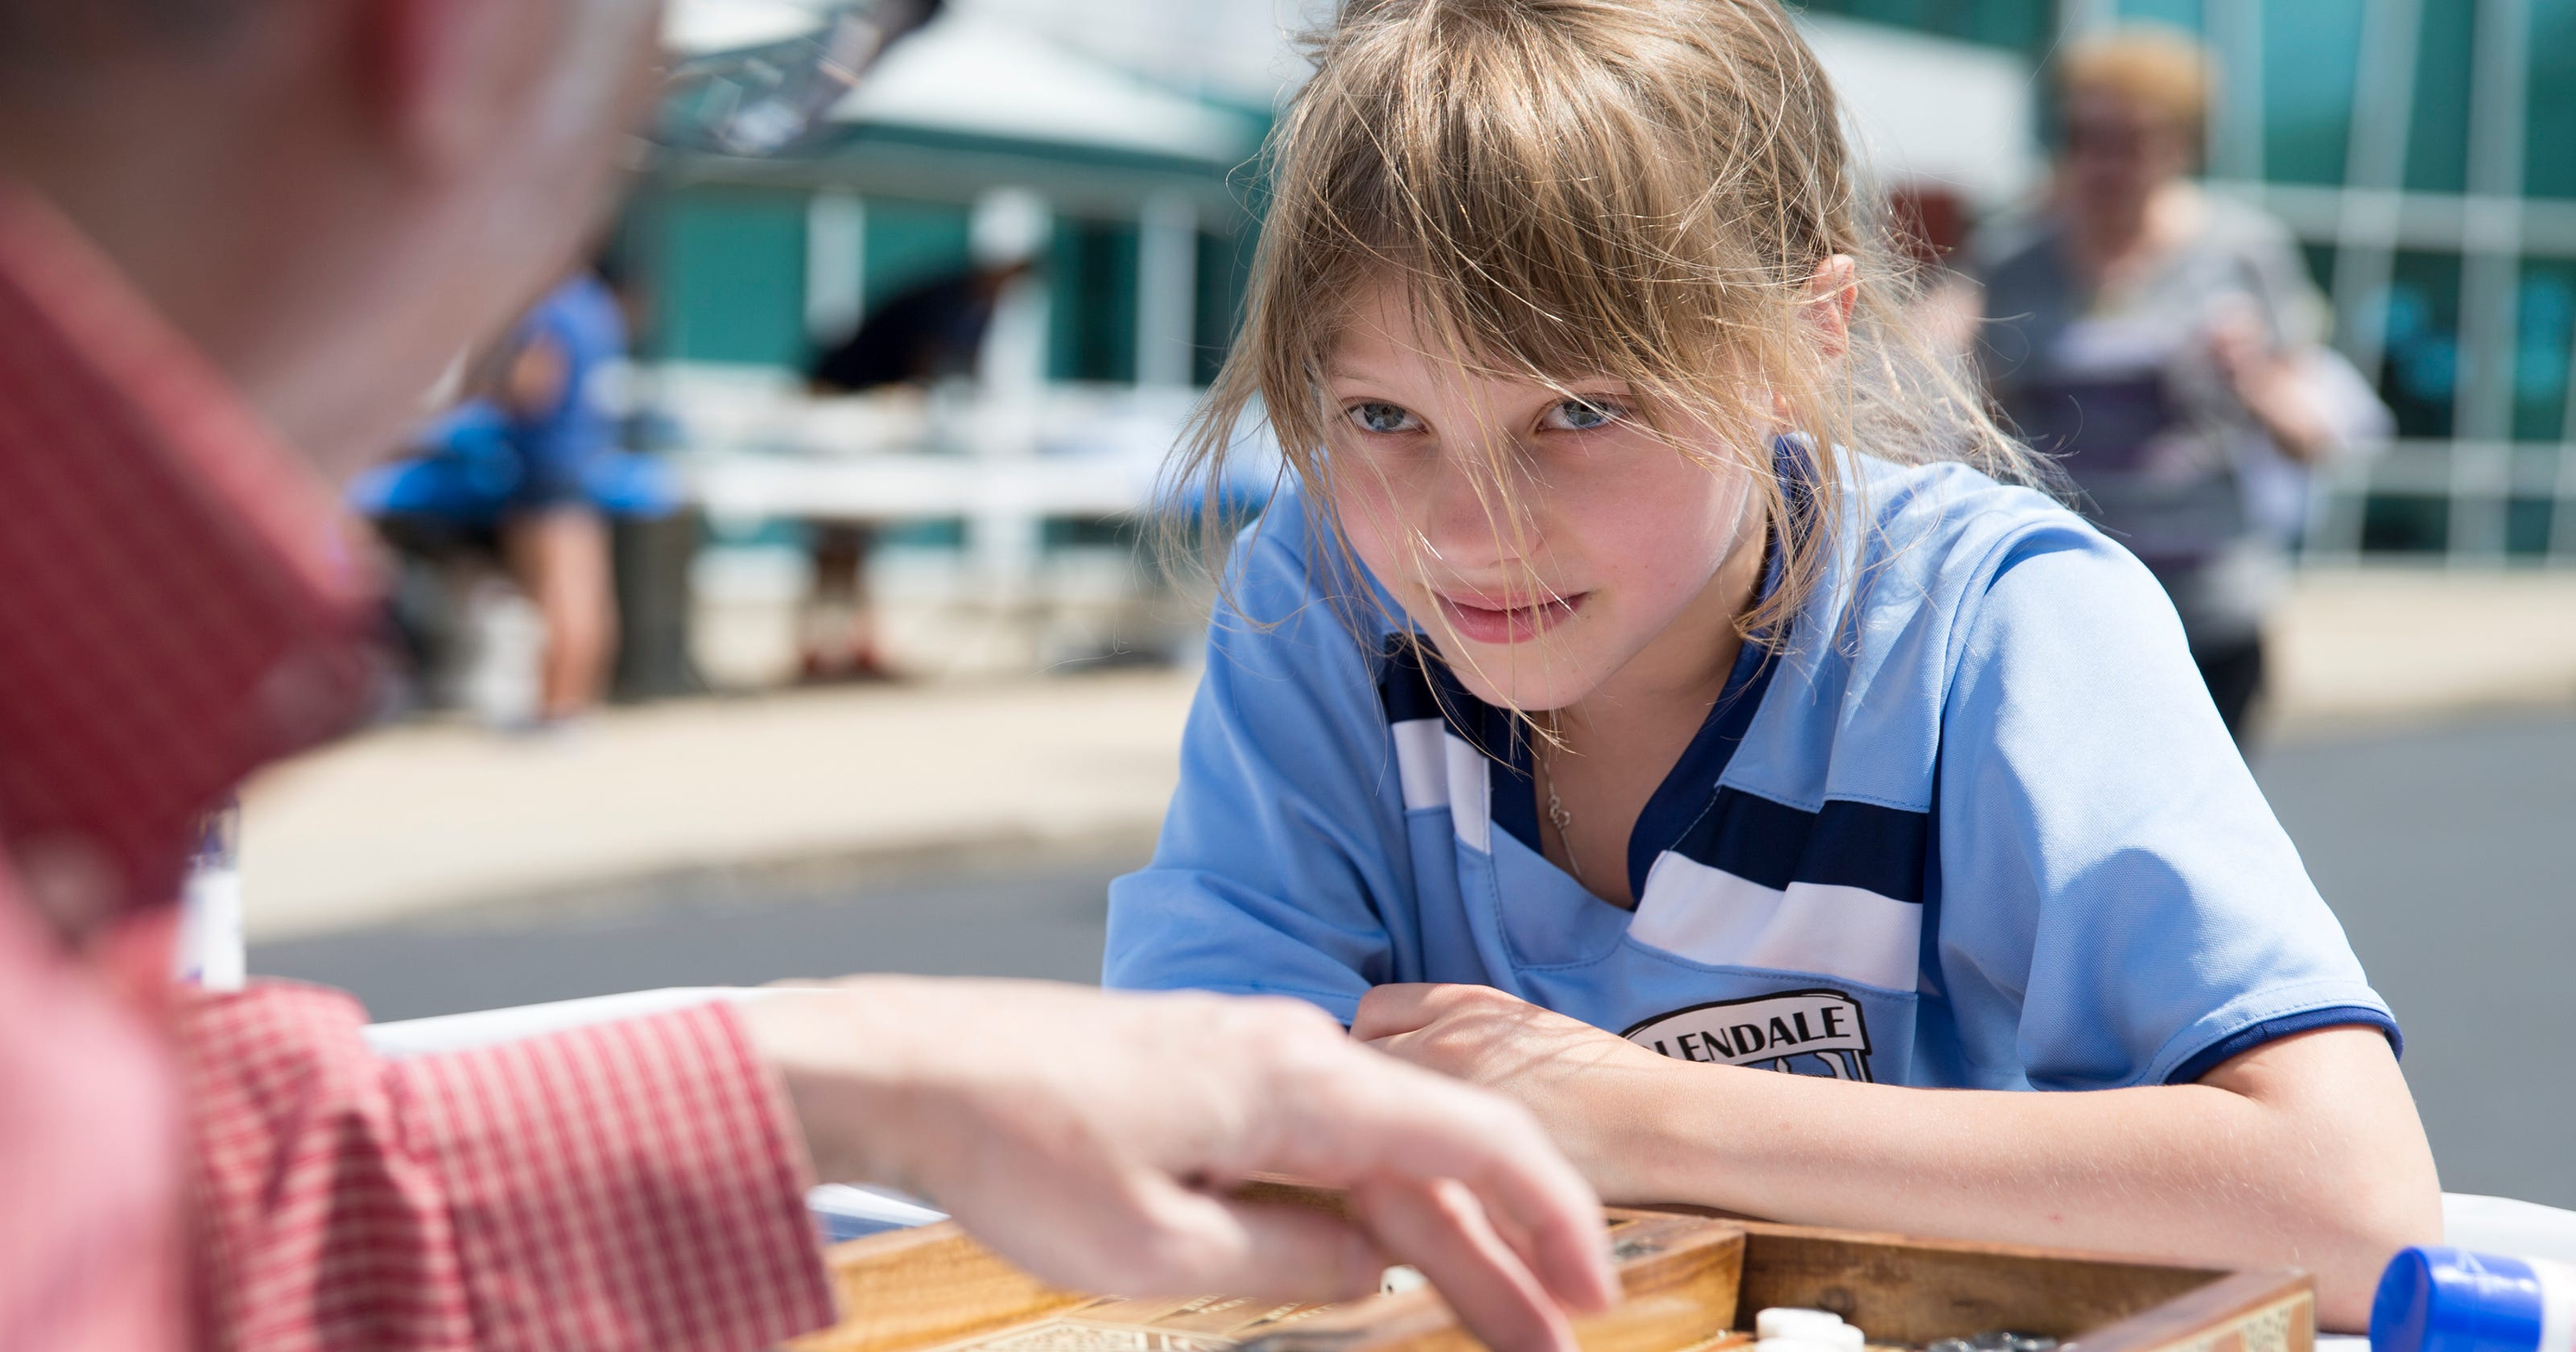 This backgammon-lover wonders: Are board games becoming obsolete?